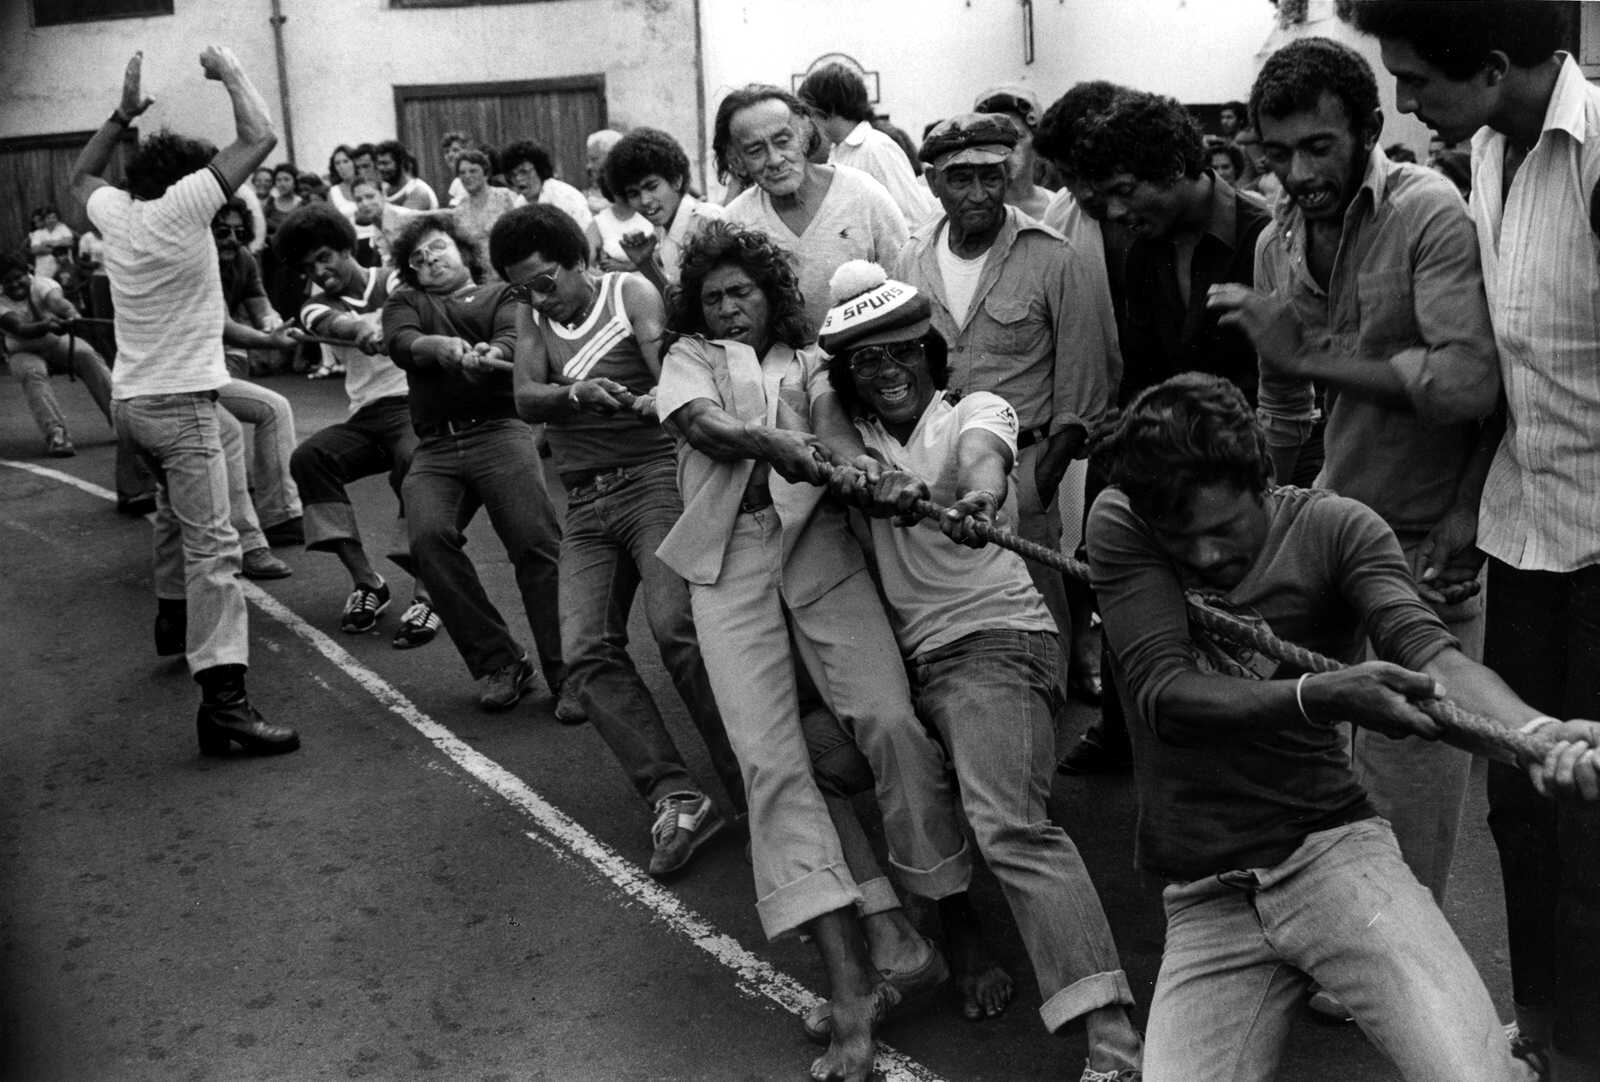 This does involve Saints! Tug-O-War on the Bridge, early 1980s - recognise anyone